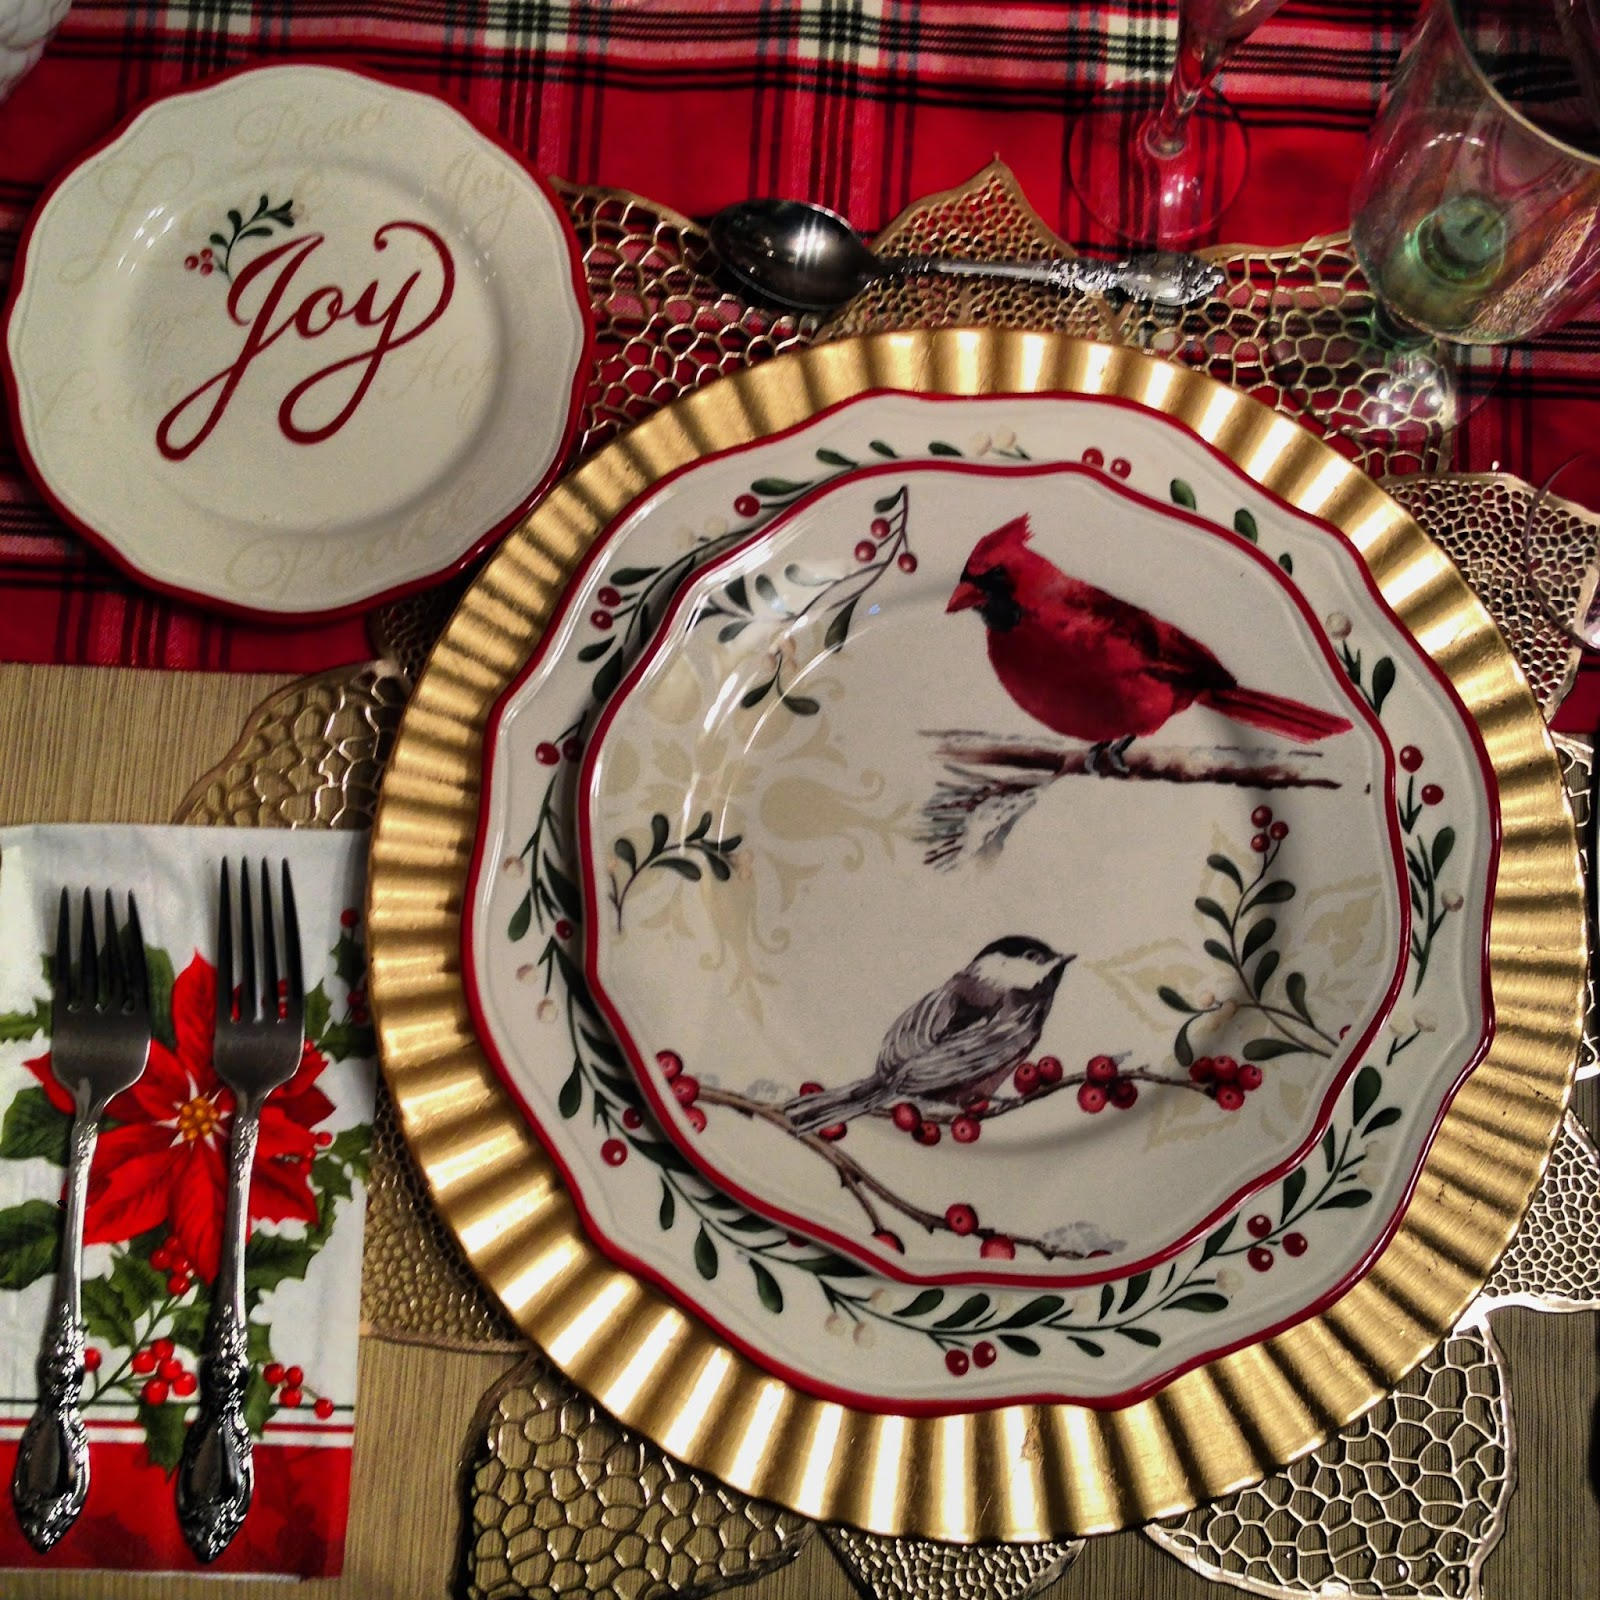 Wouldn\u0027t you feel festive eating your Christmas dinner at this table?? & Dine Like A King: Better Homes and Gardens Christmas Dishes 2010 ...